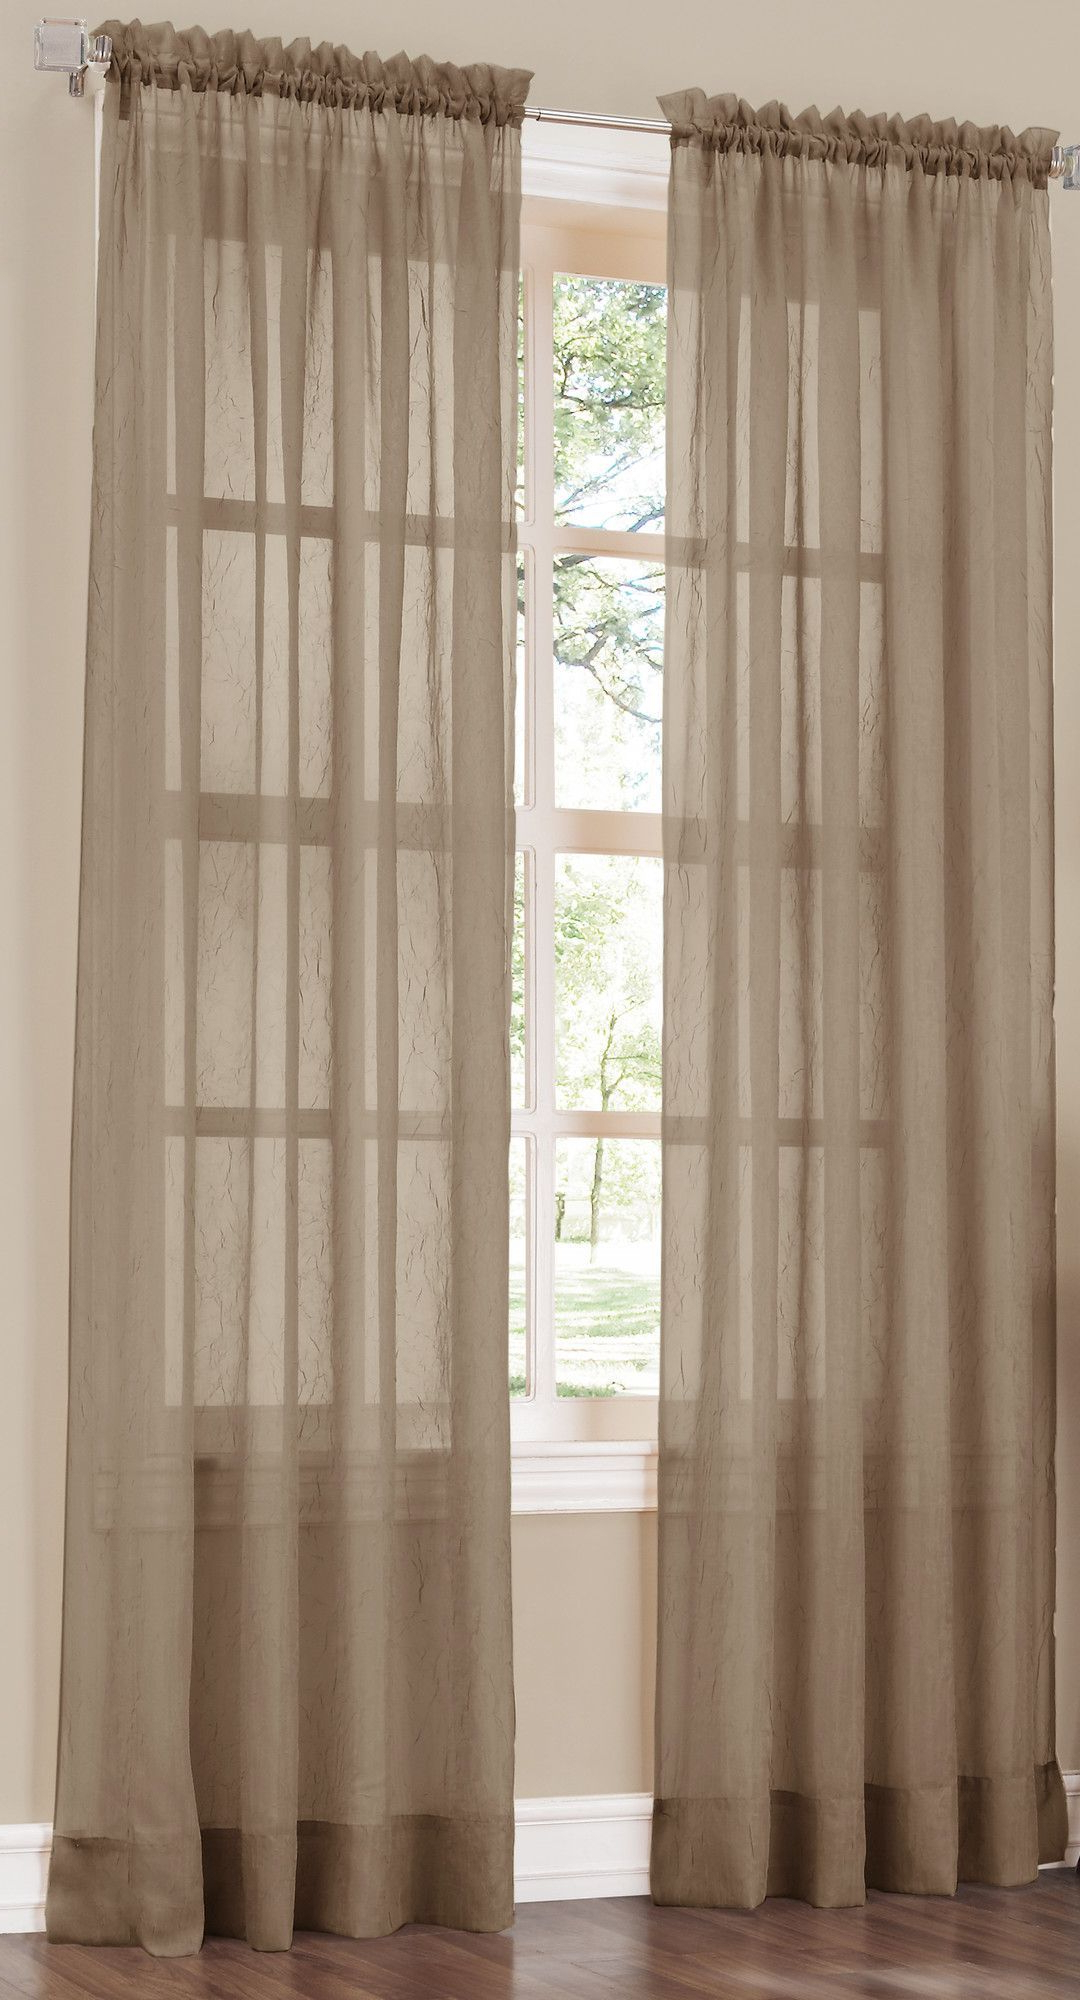 Most Up To Date Crushed Sheer Voile Solid Sheer Rod Pocket Single Curtain Pertaining To Erica Sheer Crushed Voile Single Curtain Panels (Gallery 6 of 20)